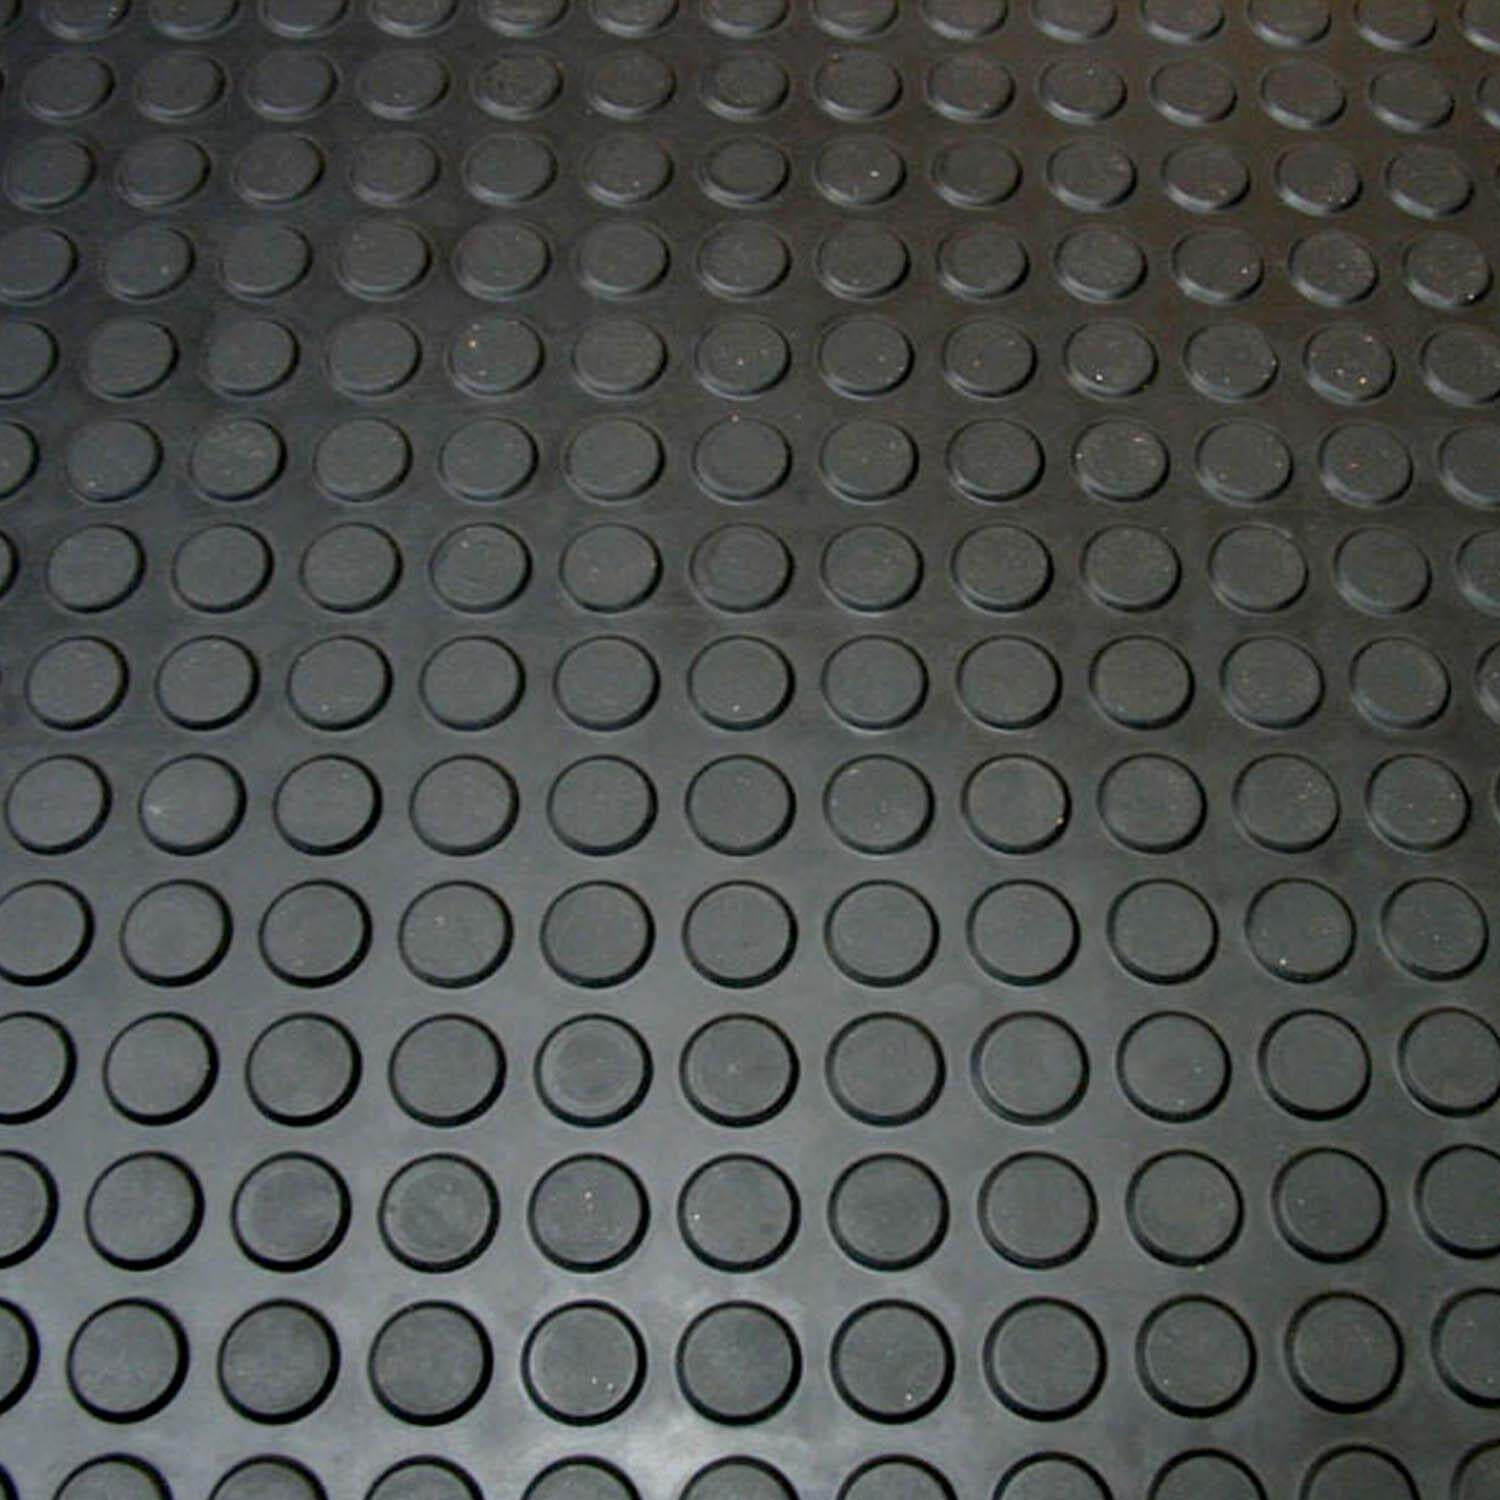 Round Stud Rubber Mat 4.5mm Thick Anti-skid Round Stud Rubber Floor Matting